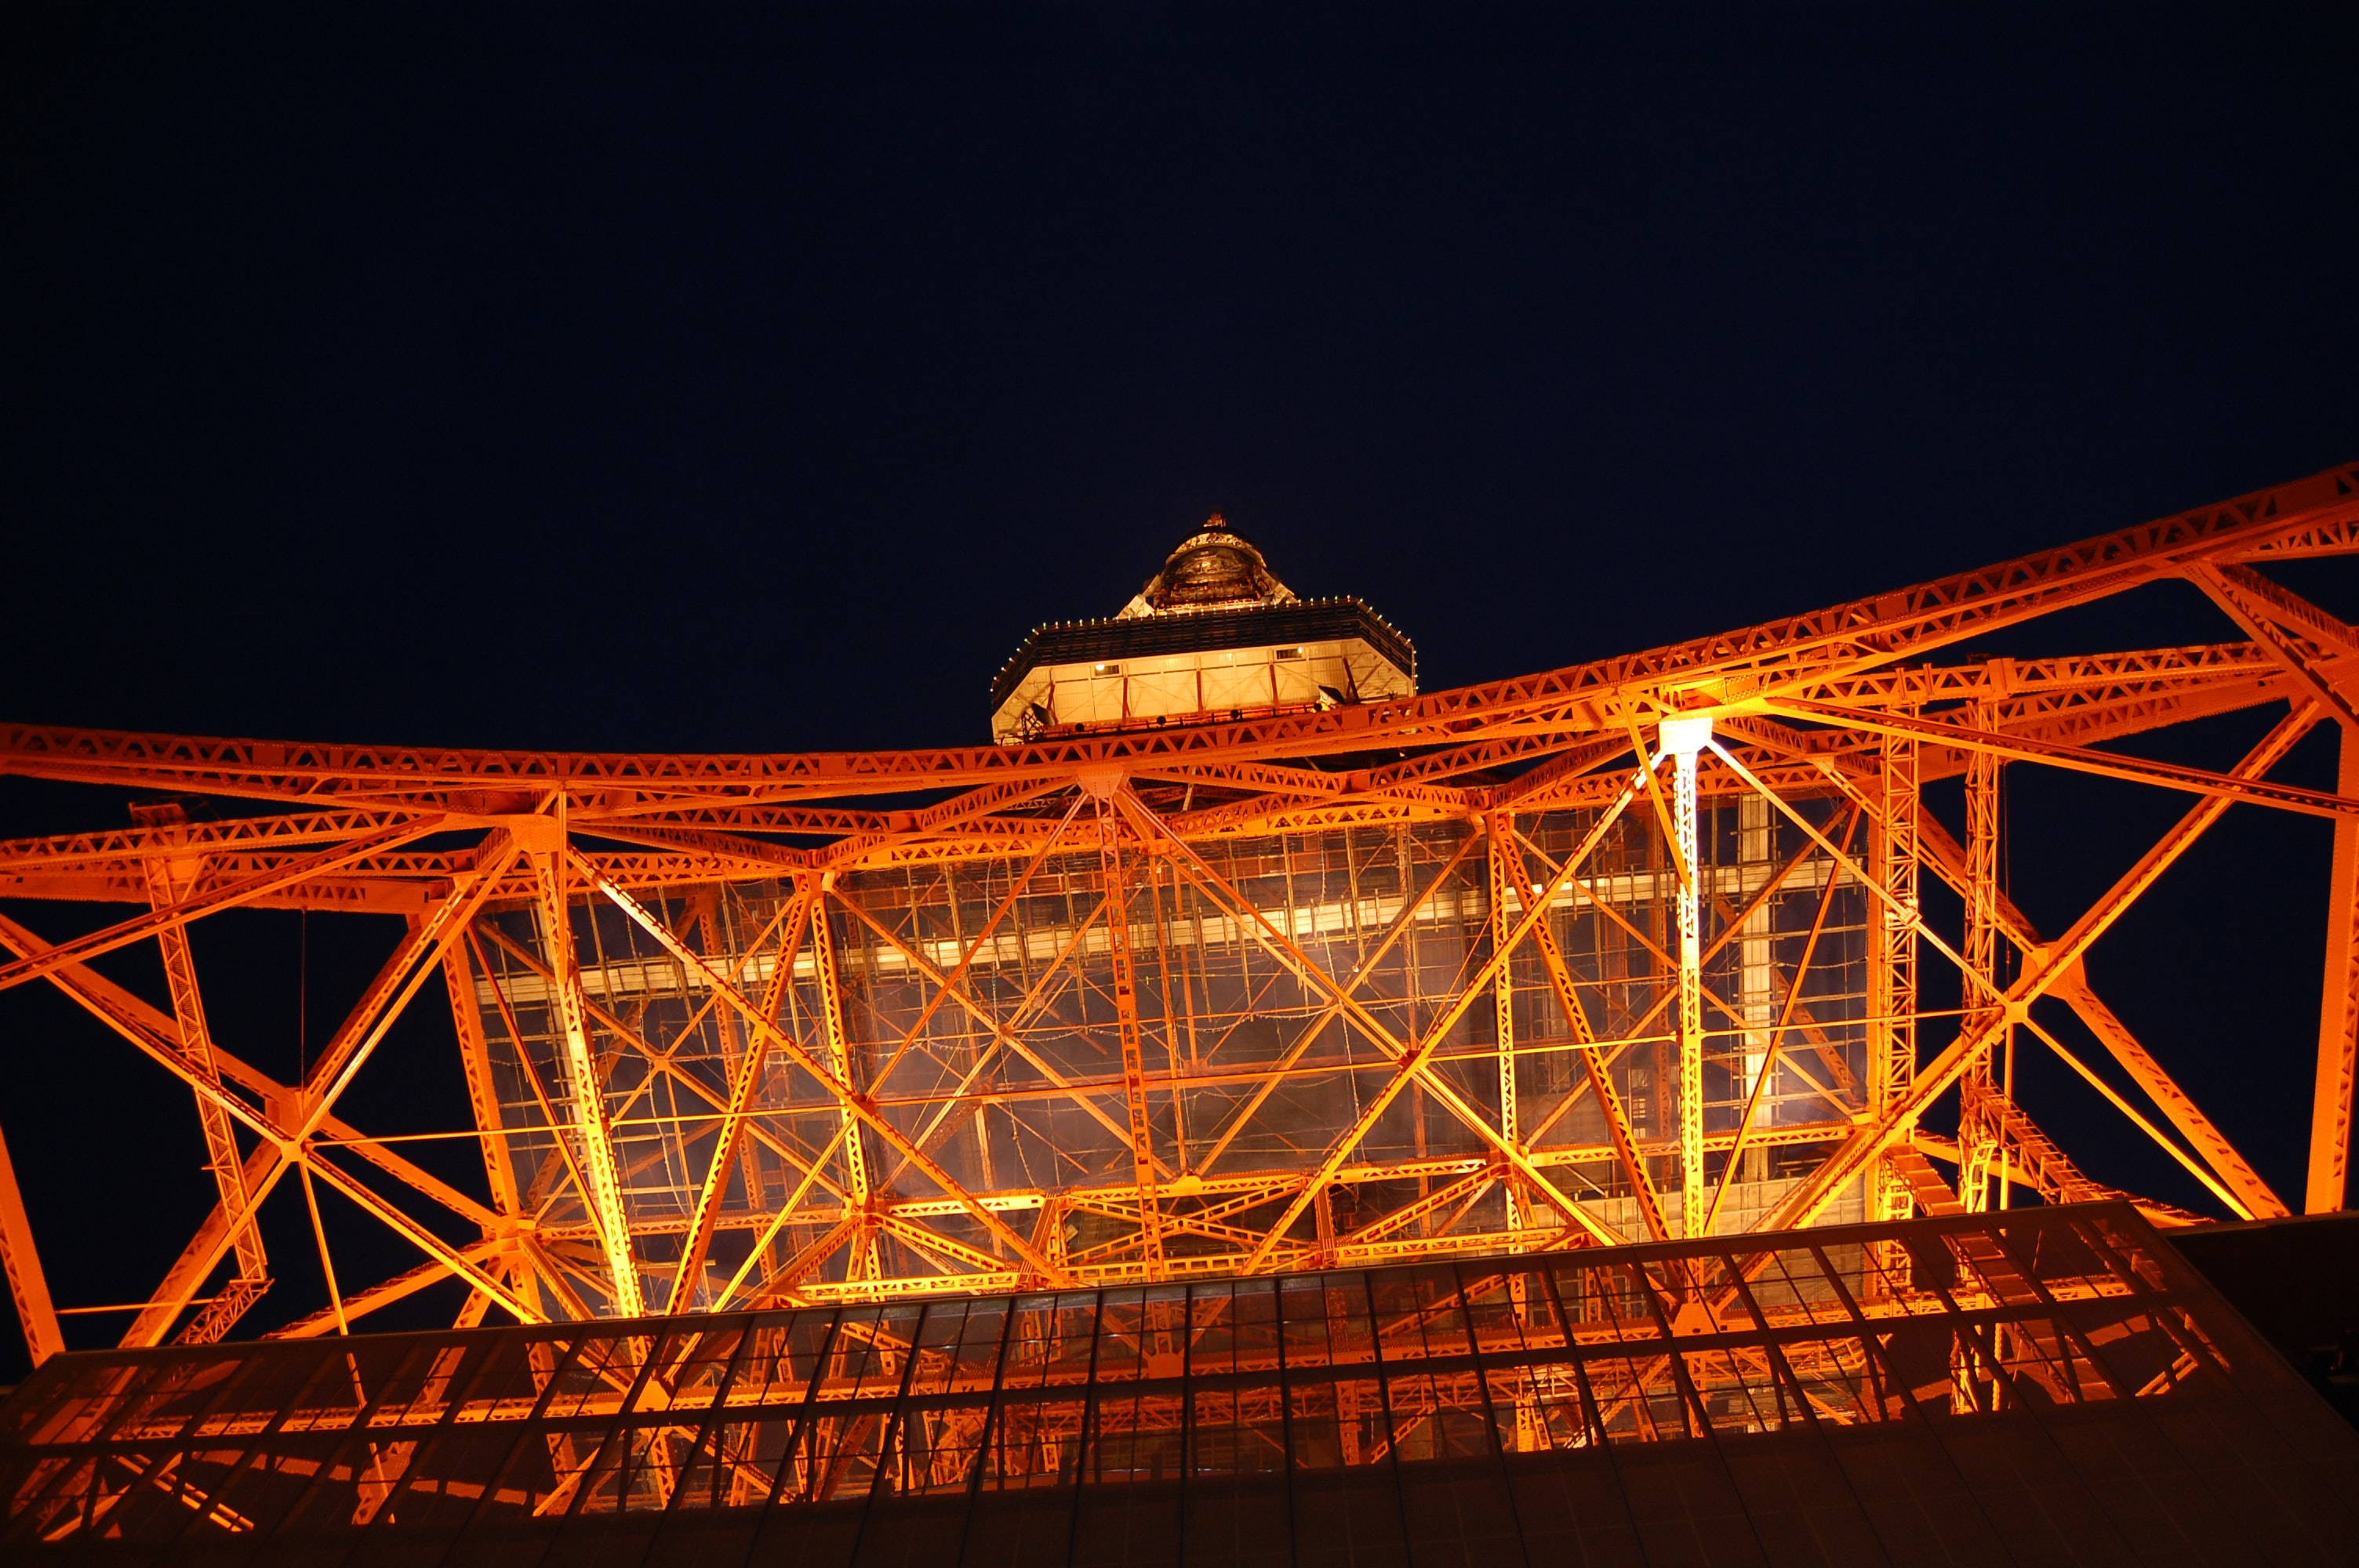 Eiffel Tower, Paris during nighttime low angle photography